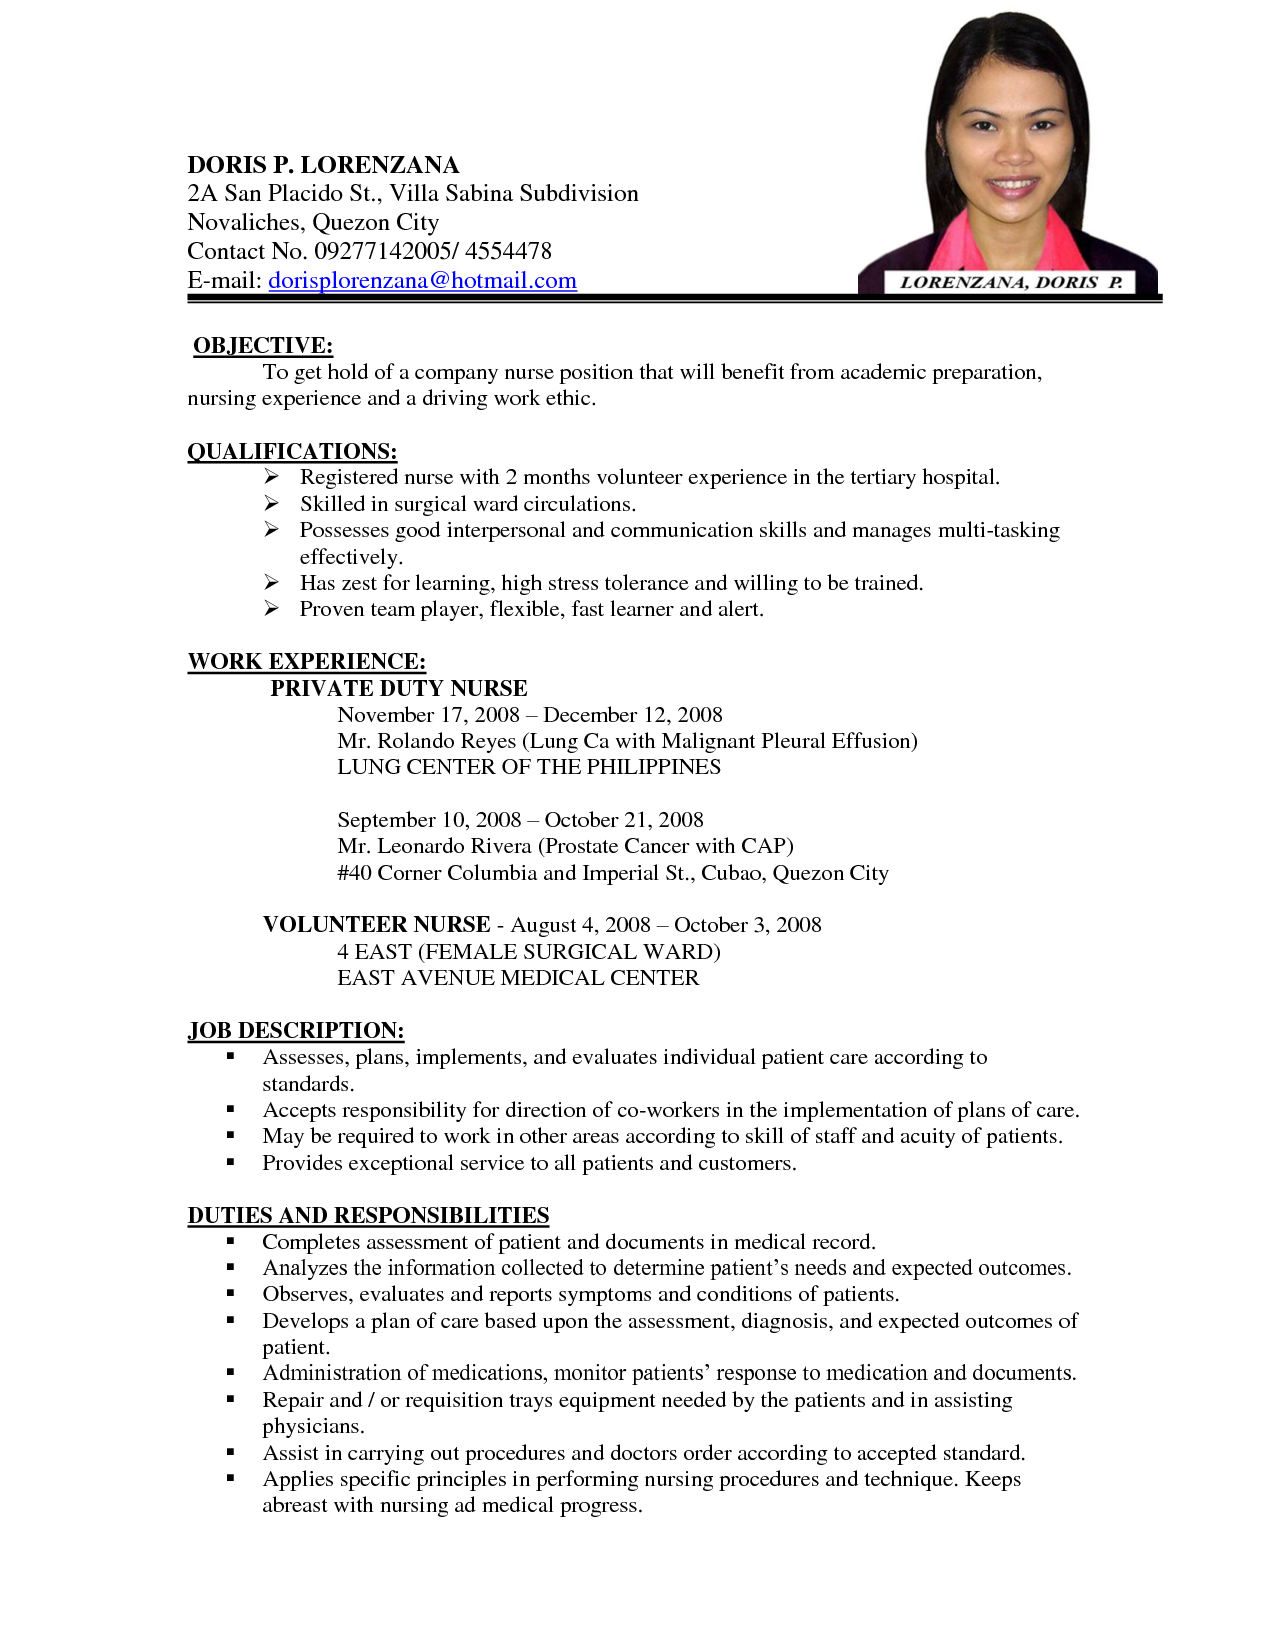 Captivating Nursing Curriculum Vitae Examples   Google Search  Curriculum Vitae Format